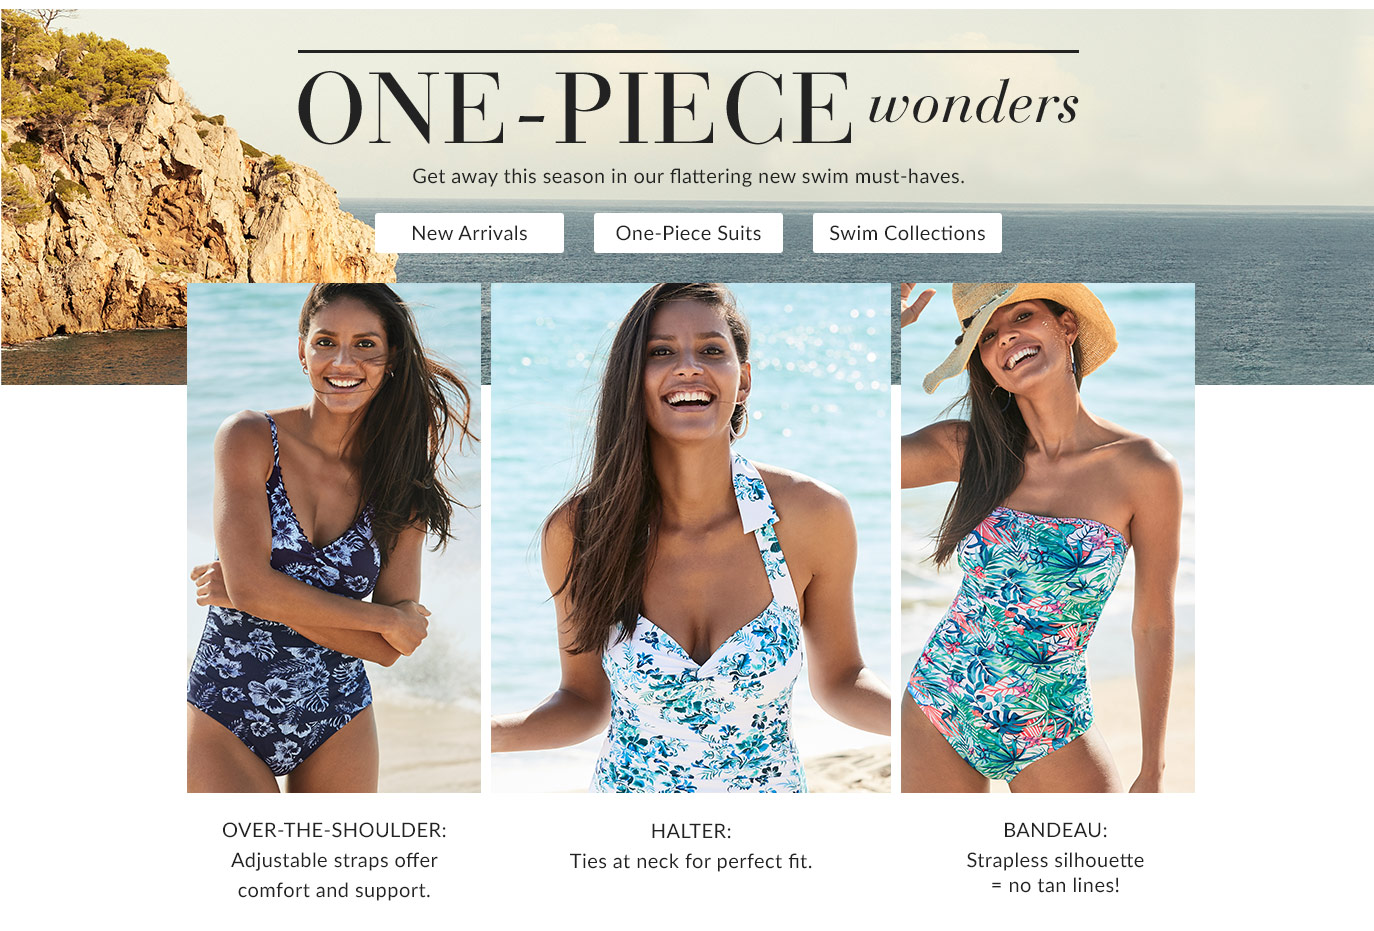 One-Piece Wonders